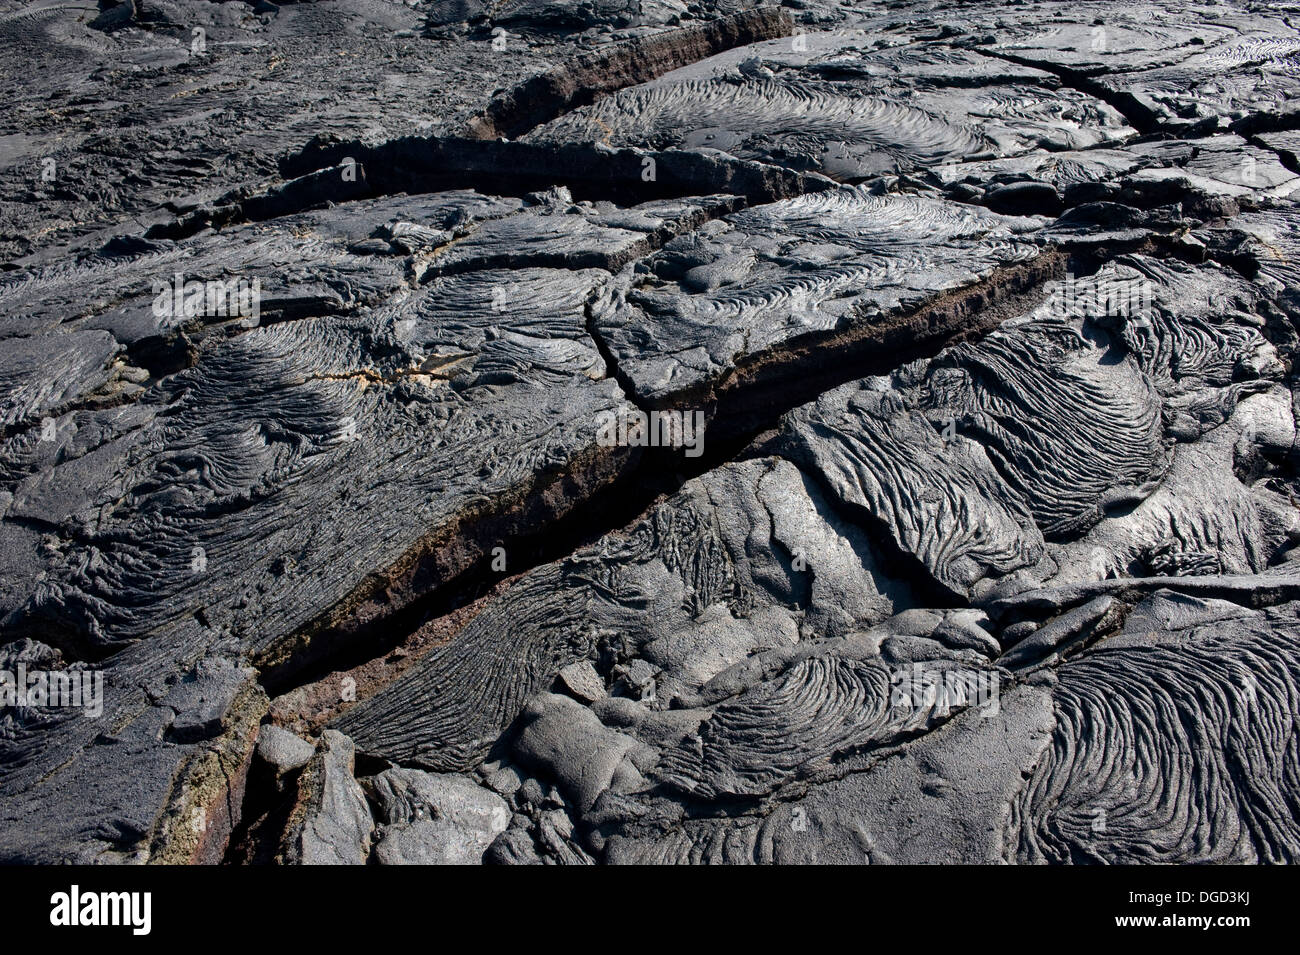 Cracked cooled lava Galapagos - Stock Image